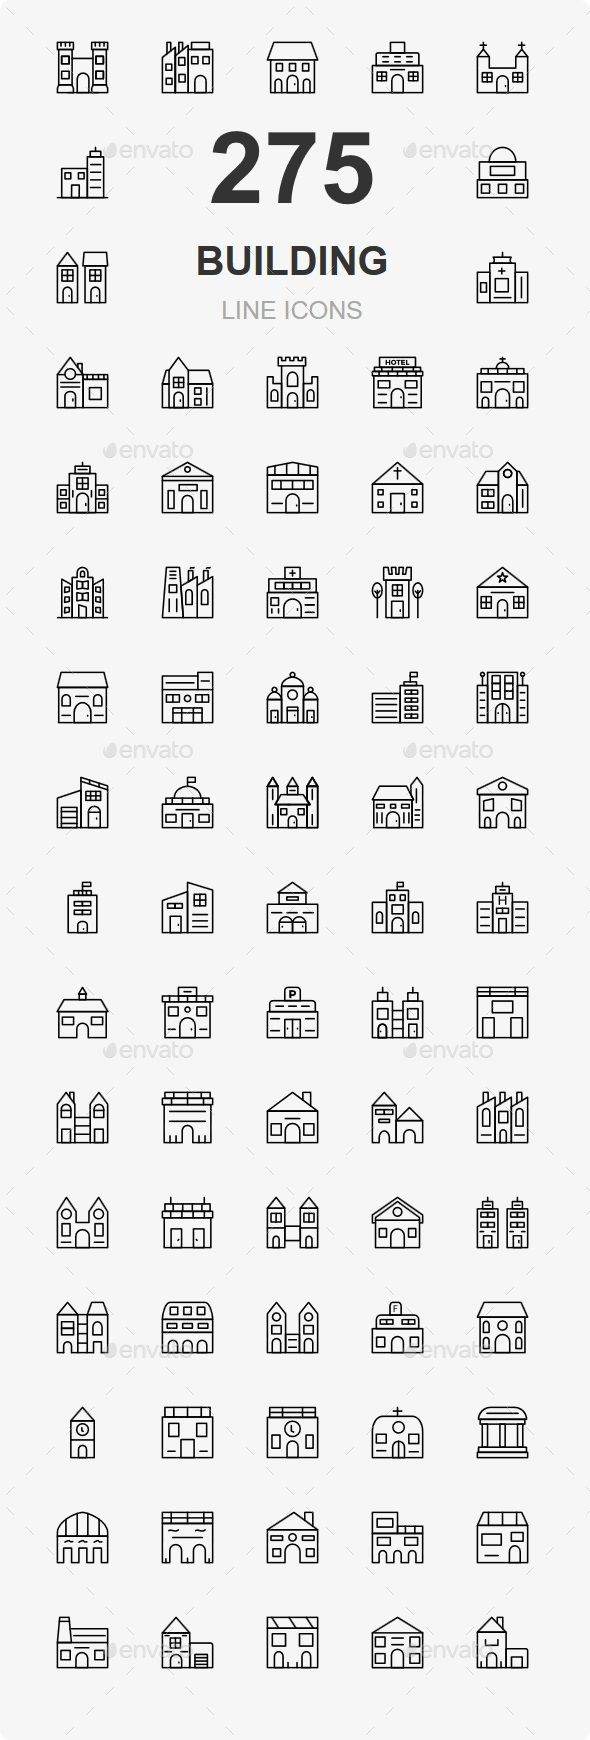 200+ Building Line Icons